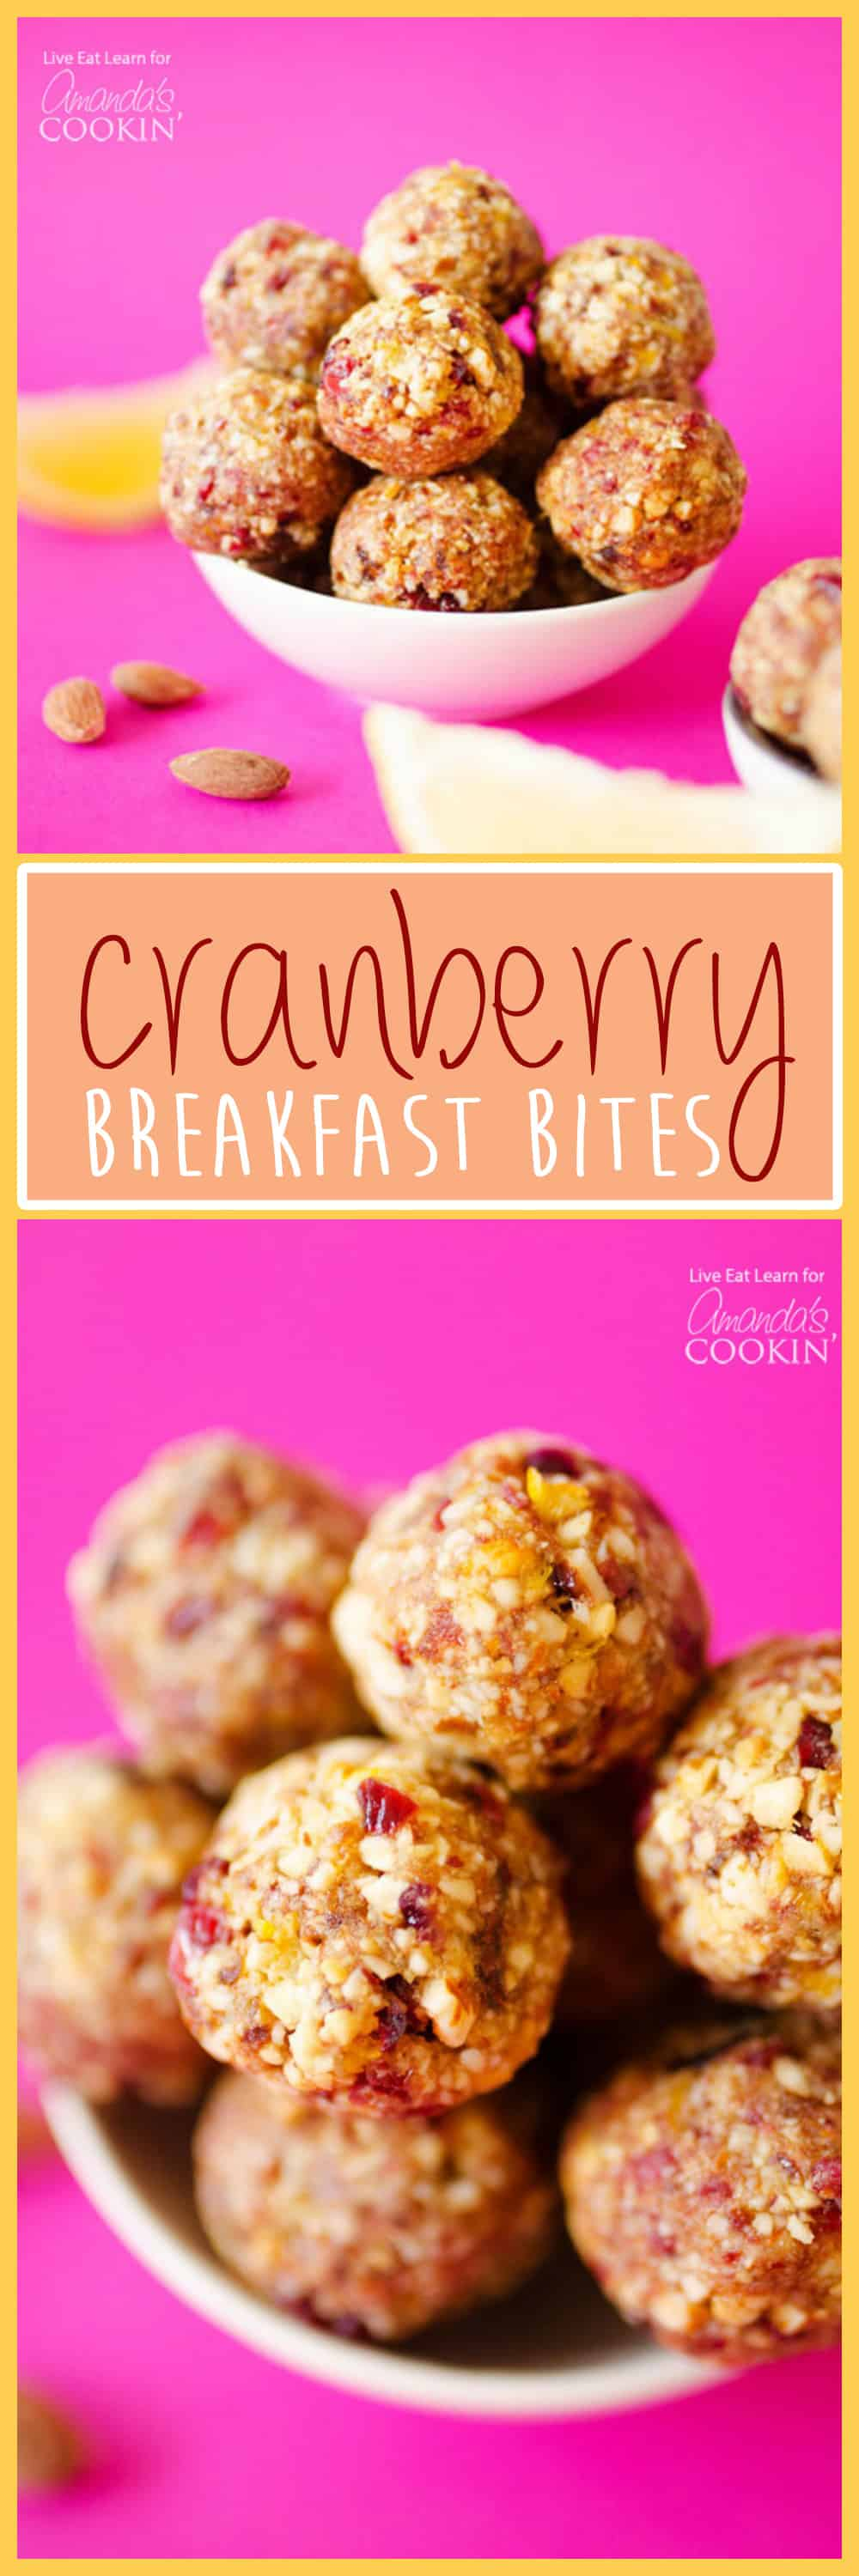 These Cranberry Breakfast Bites are an ultra-quick and simple way to fill up on antioxidant-rich fruits and healthy fats in the morning.